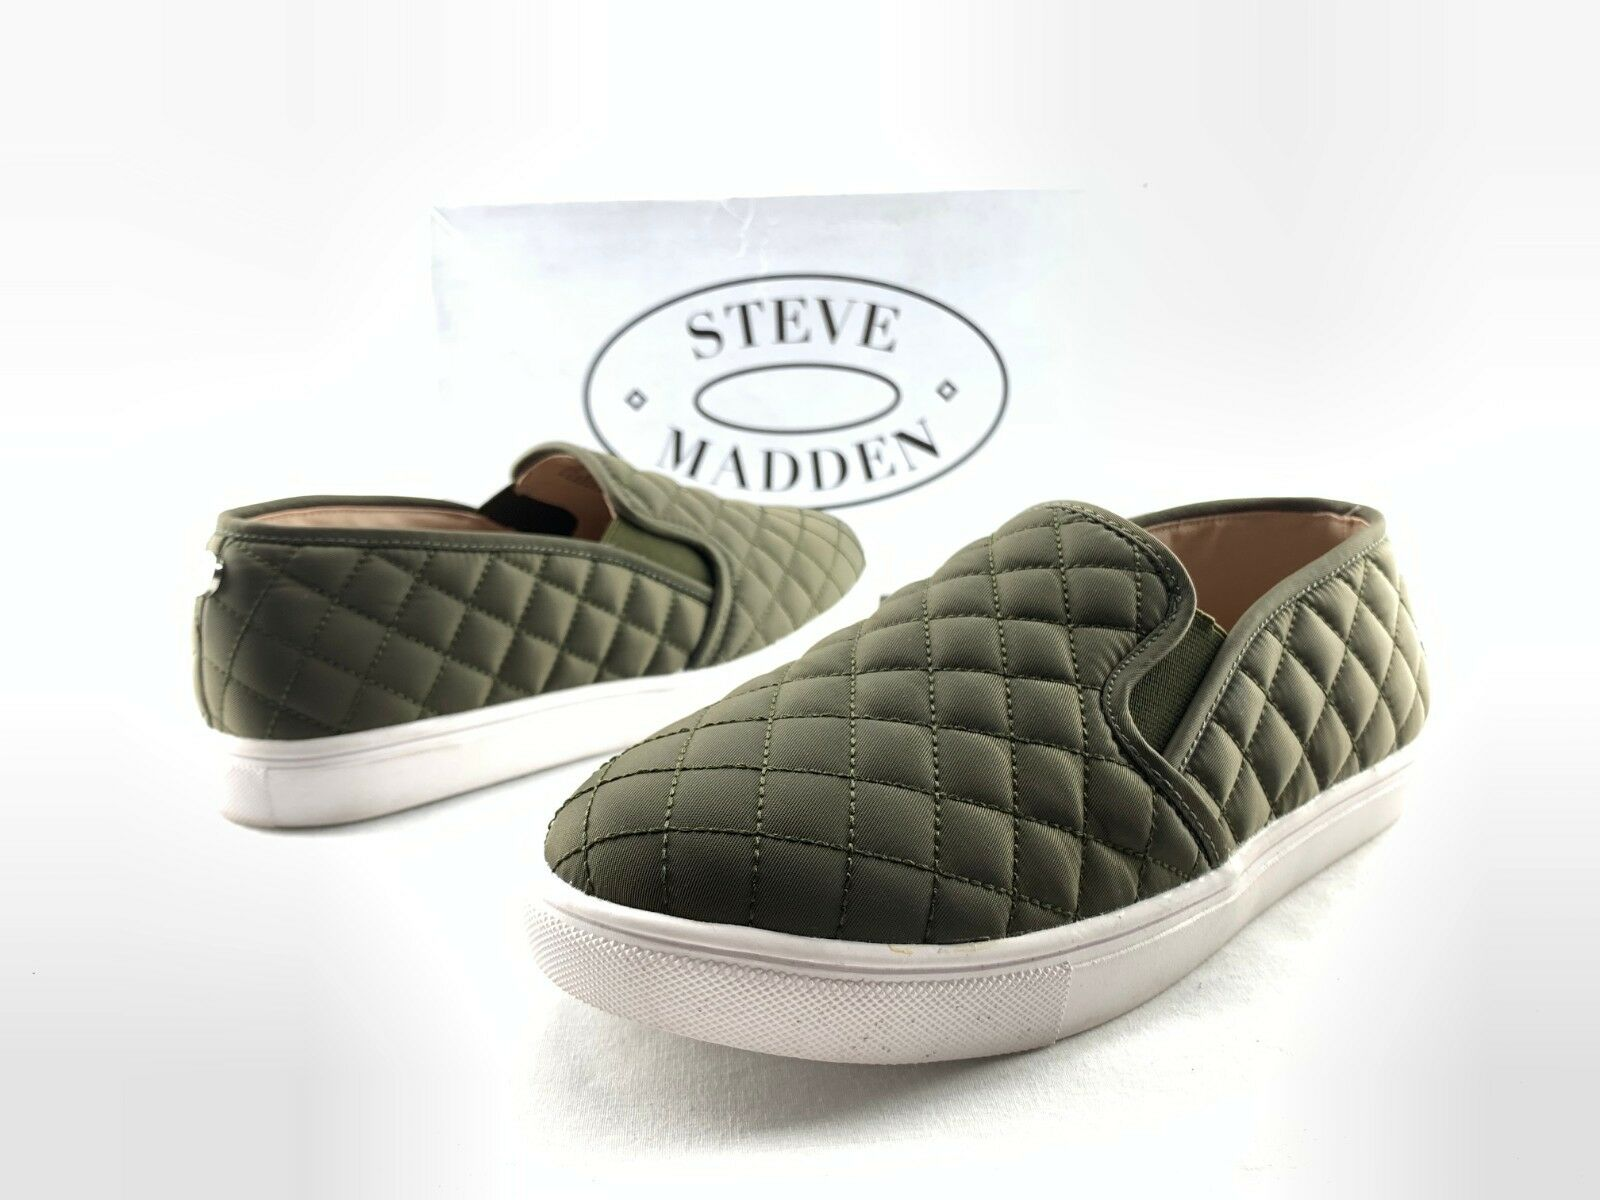 Steve Madden Ecentrcq Women's Olive Green Quilted Slip On Sneakers US 8 W C737